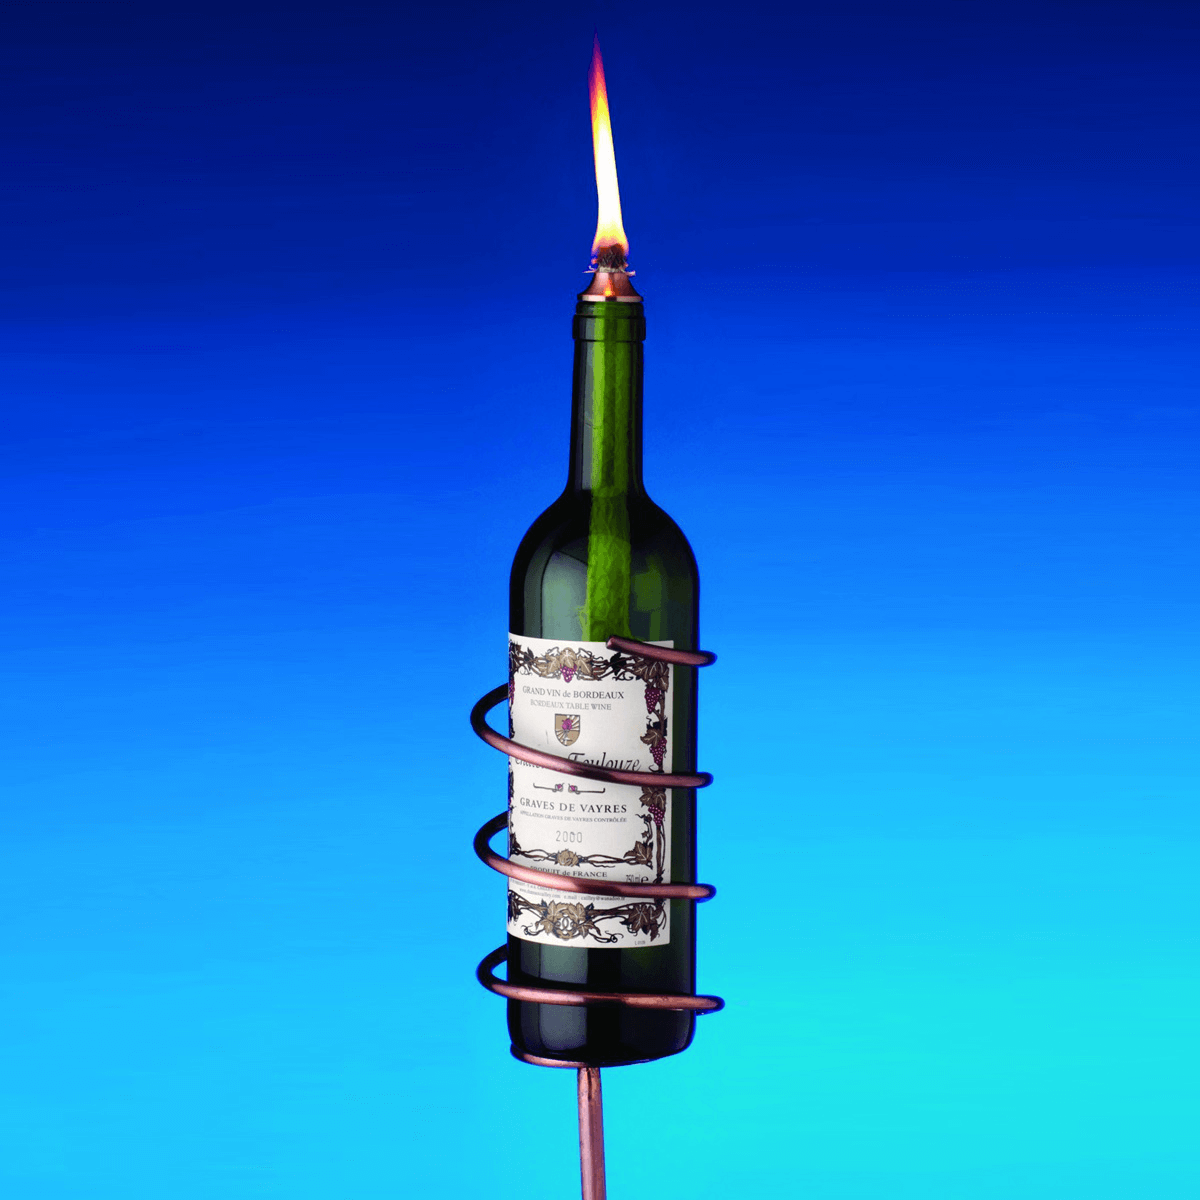 Torch from Wine Bottle